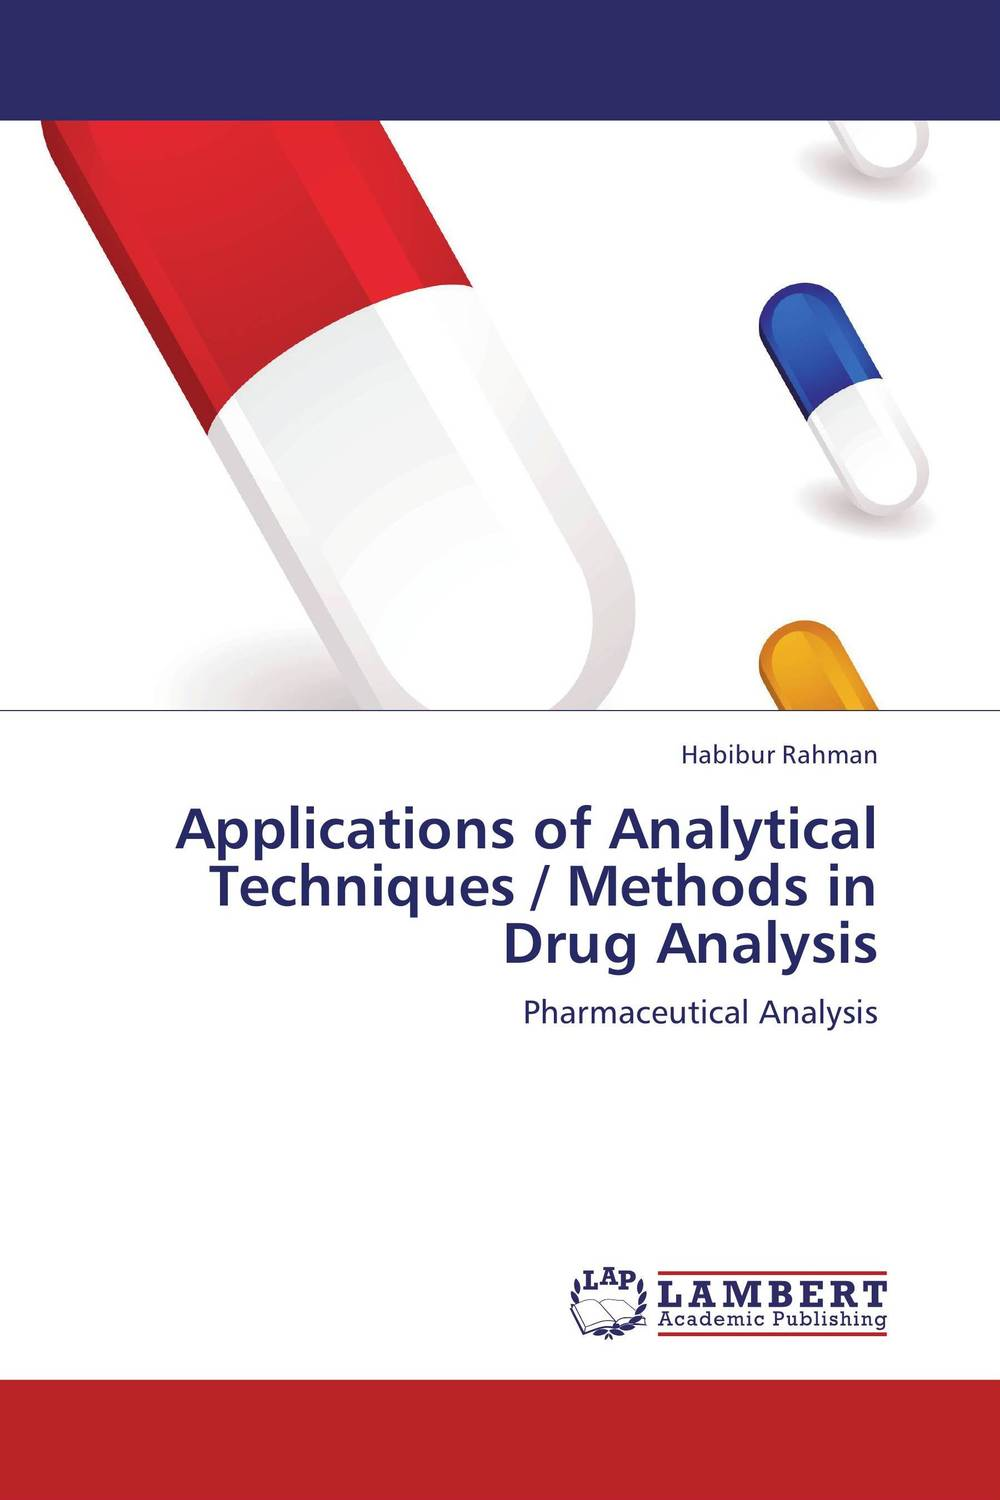 Applications of Analytical Techniques / Methods in Drug Analysis understanding drug misuse